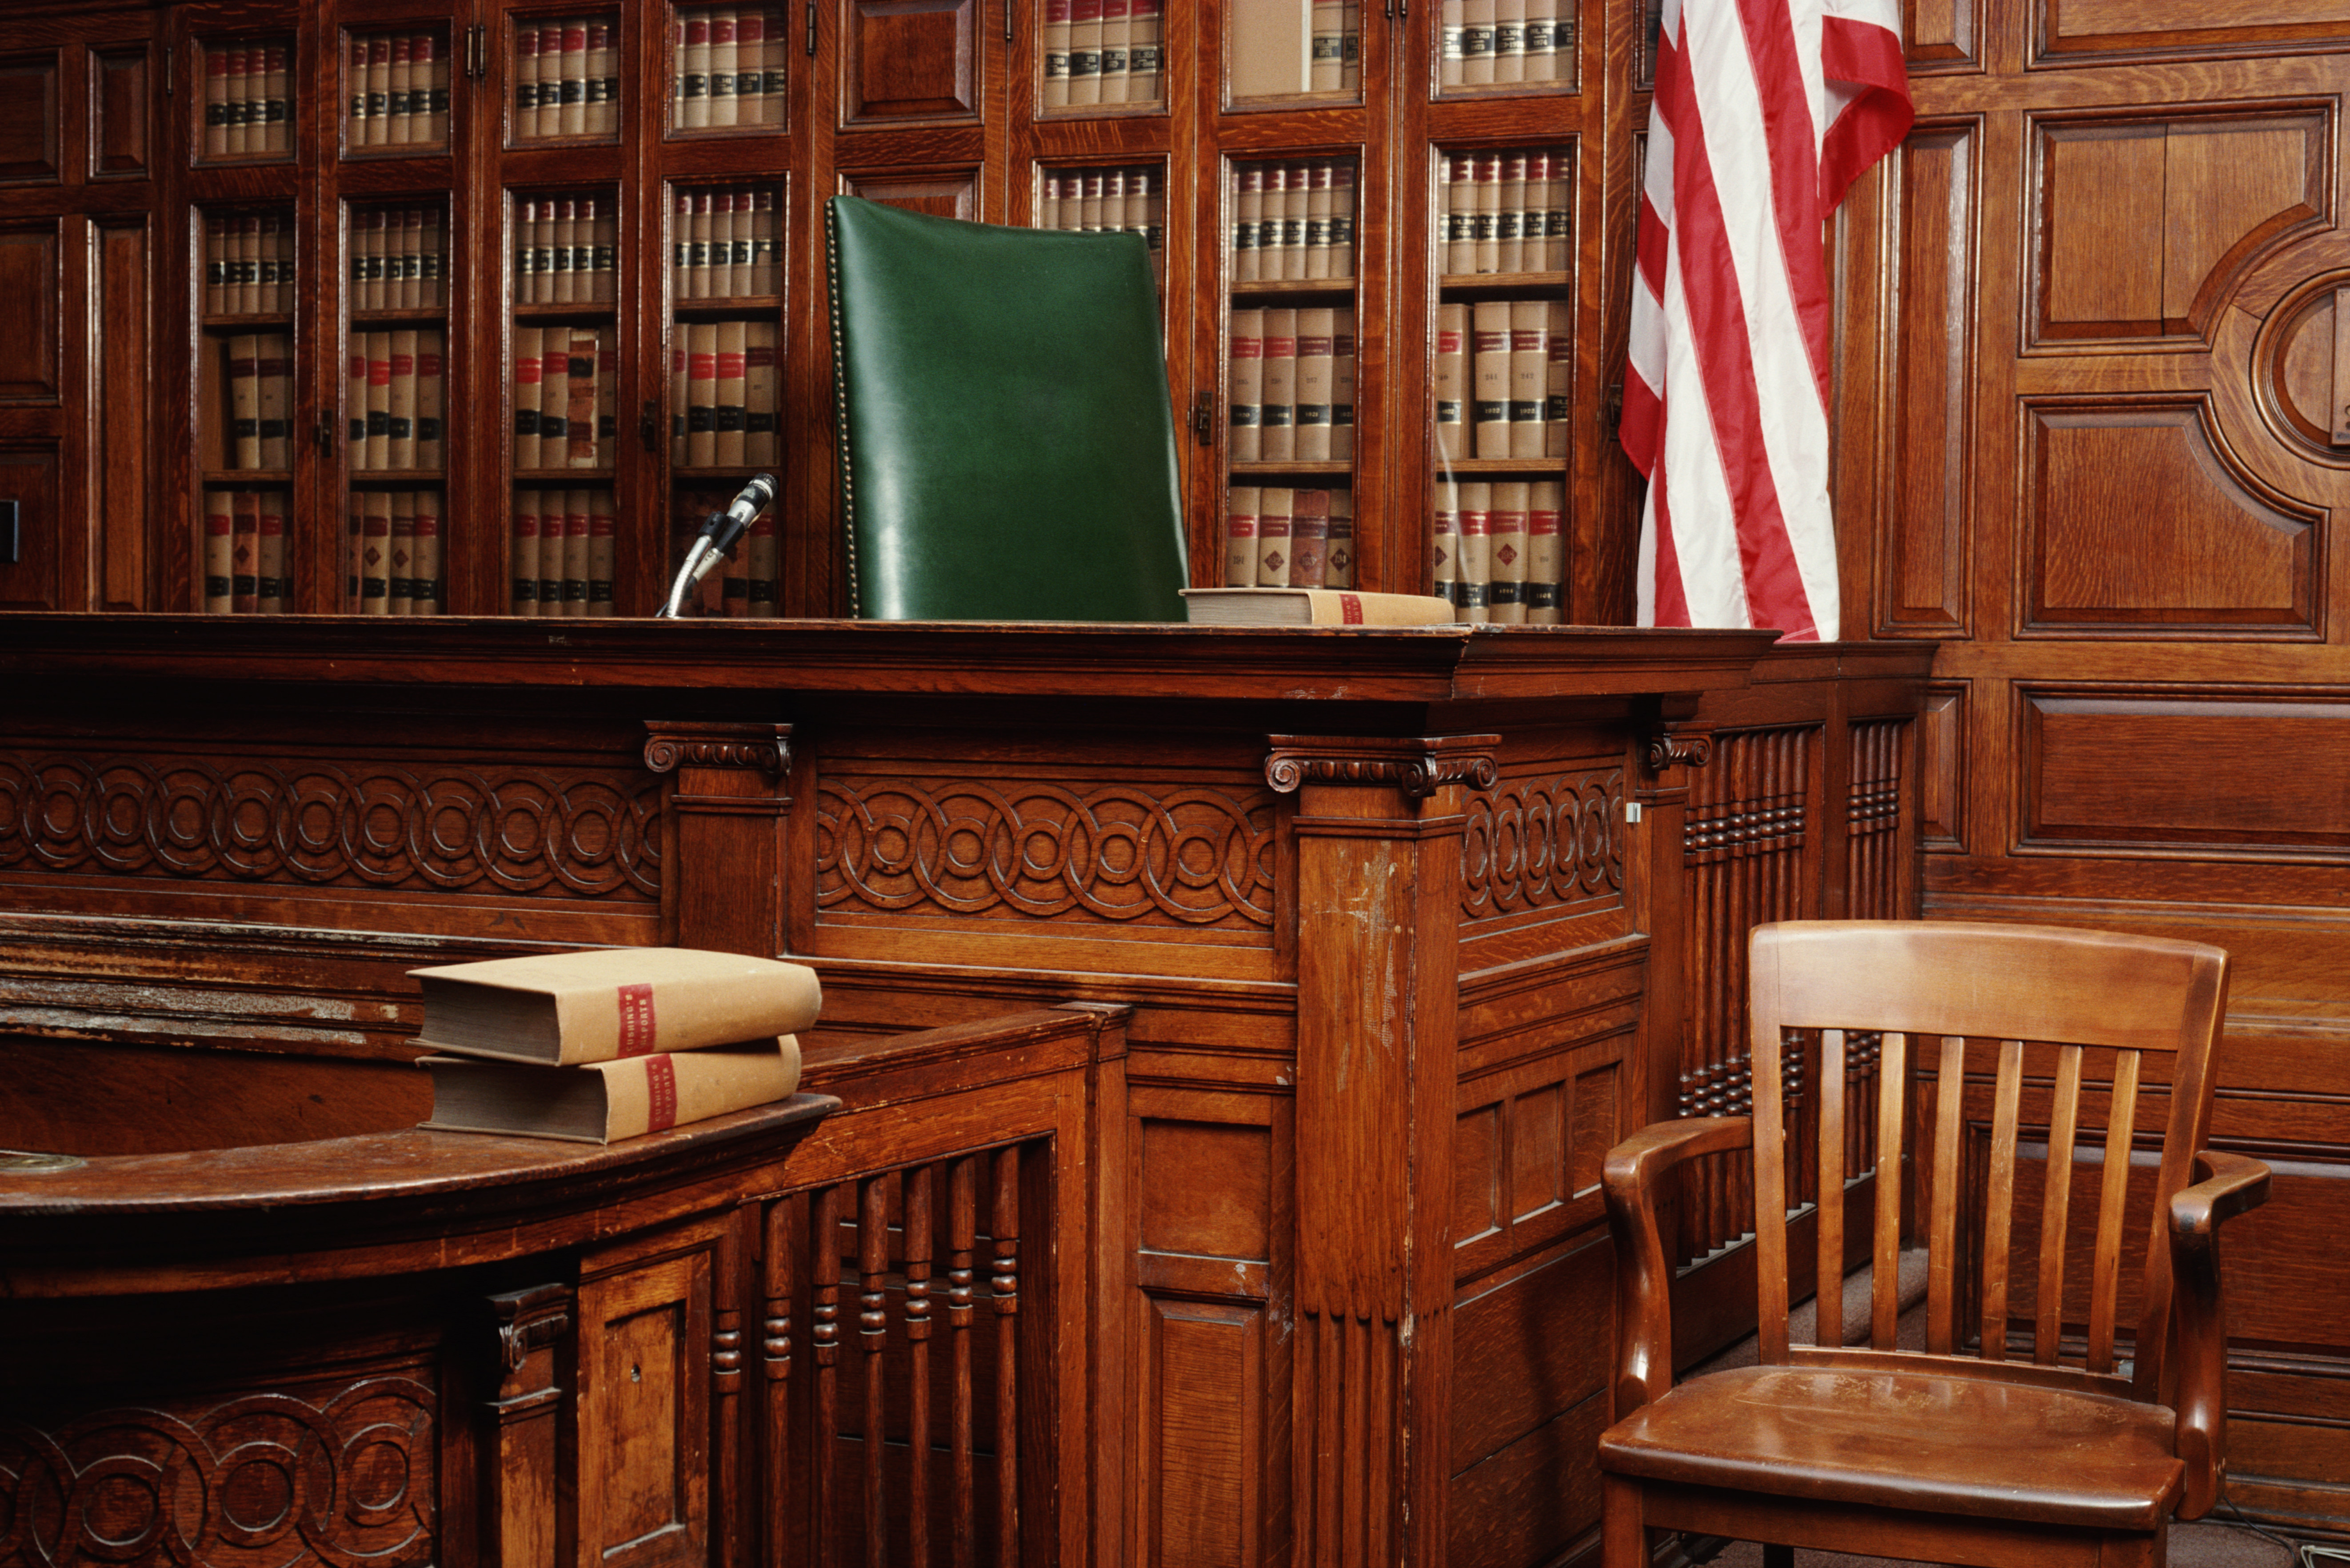 INTERNAL OF A COURTROOM WITH FLAG IN BOSTON, MASSACHUSETTS